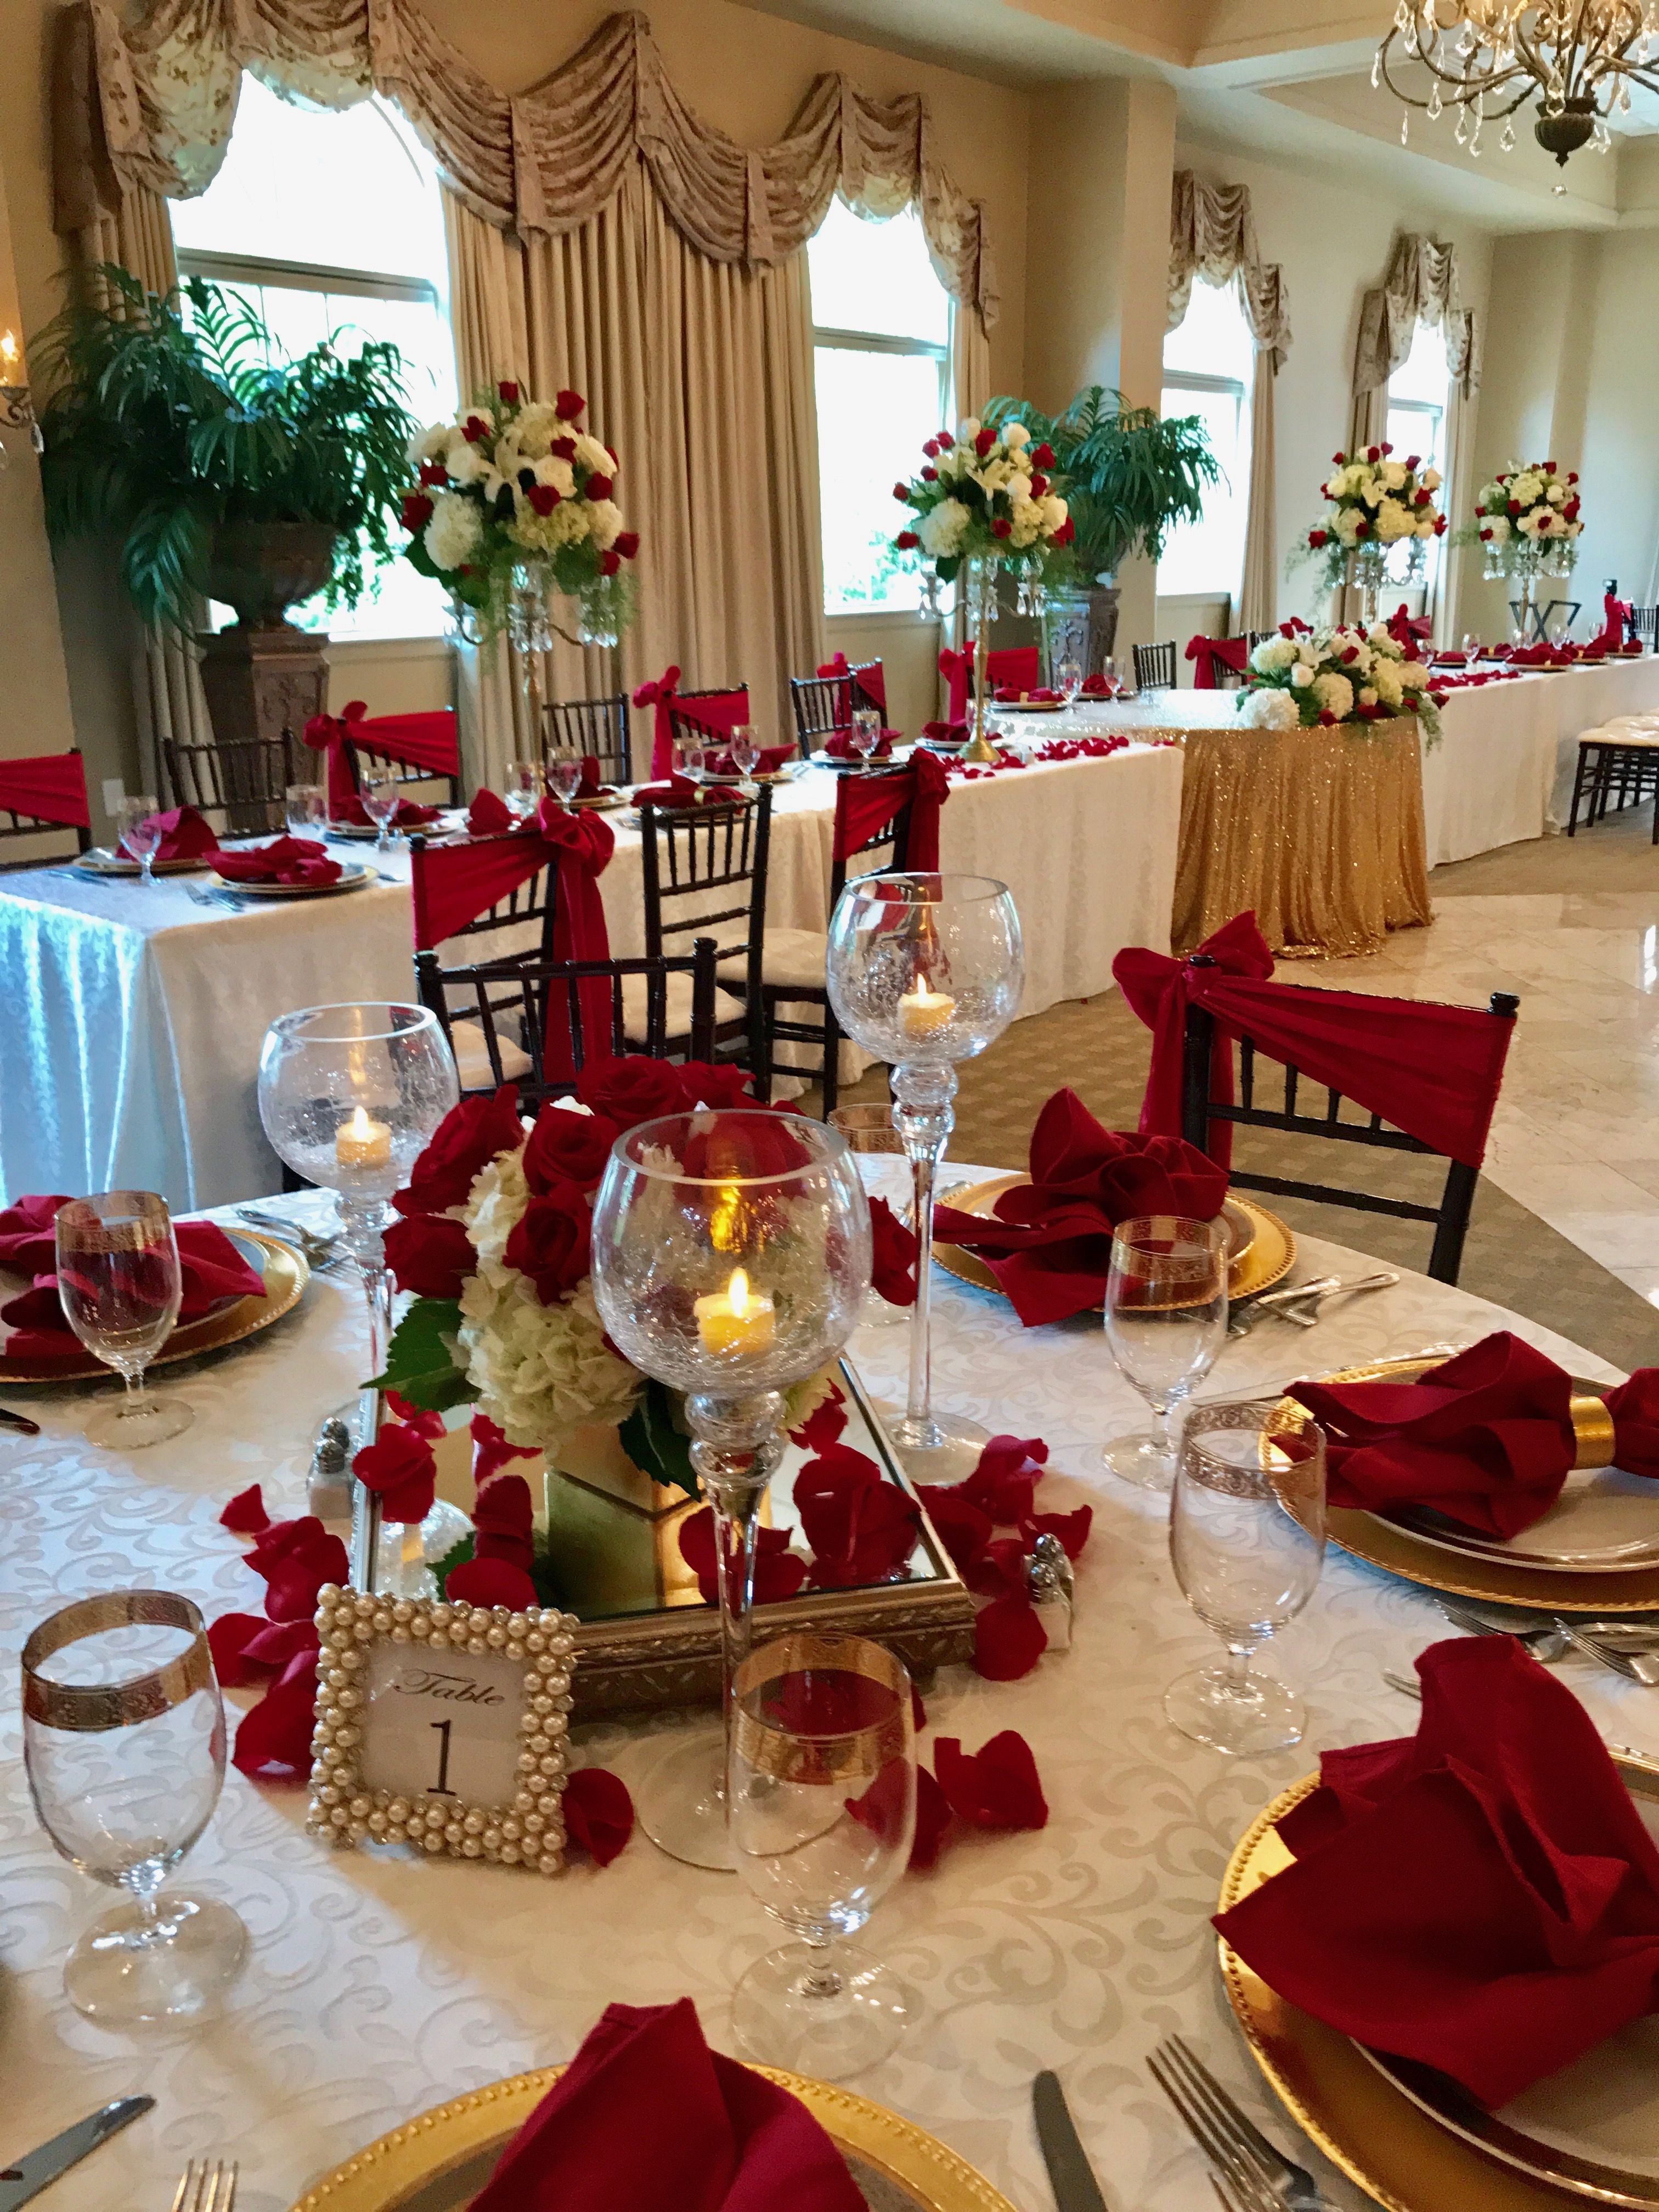 Pin By Paul Brummer On Tate House Ballroom Decor Wedding Centerpieces Wedding Decorations Christmas Table Settings